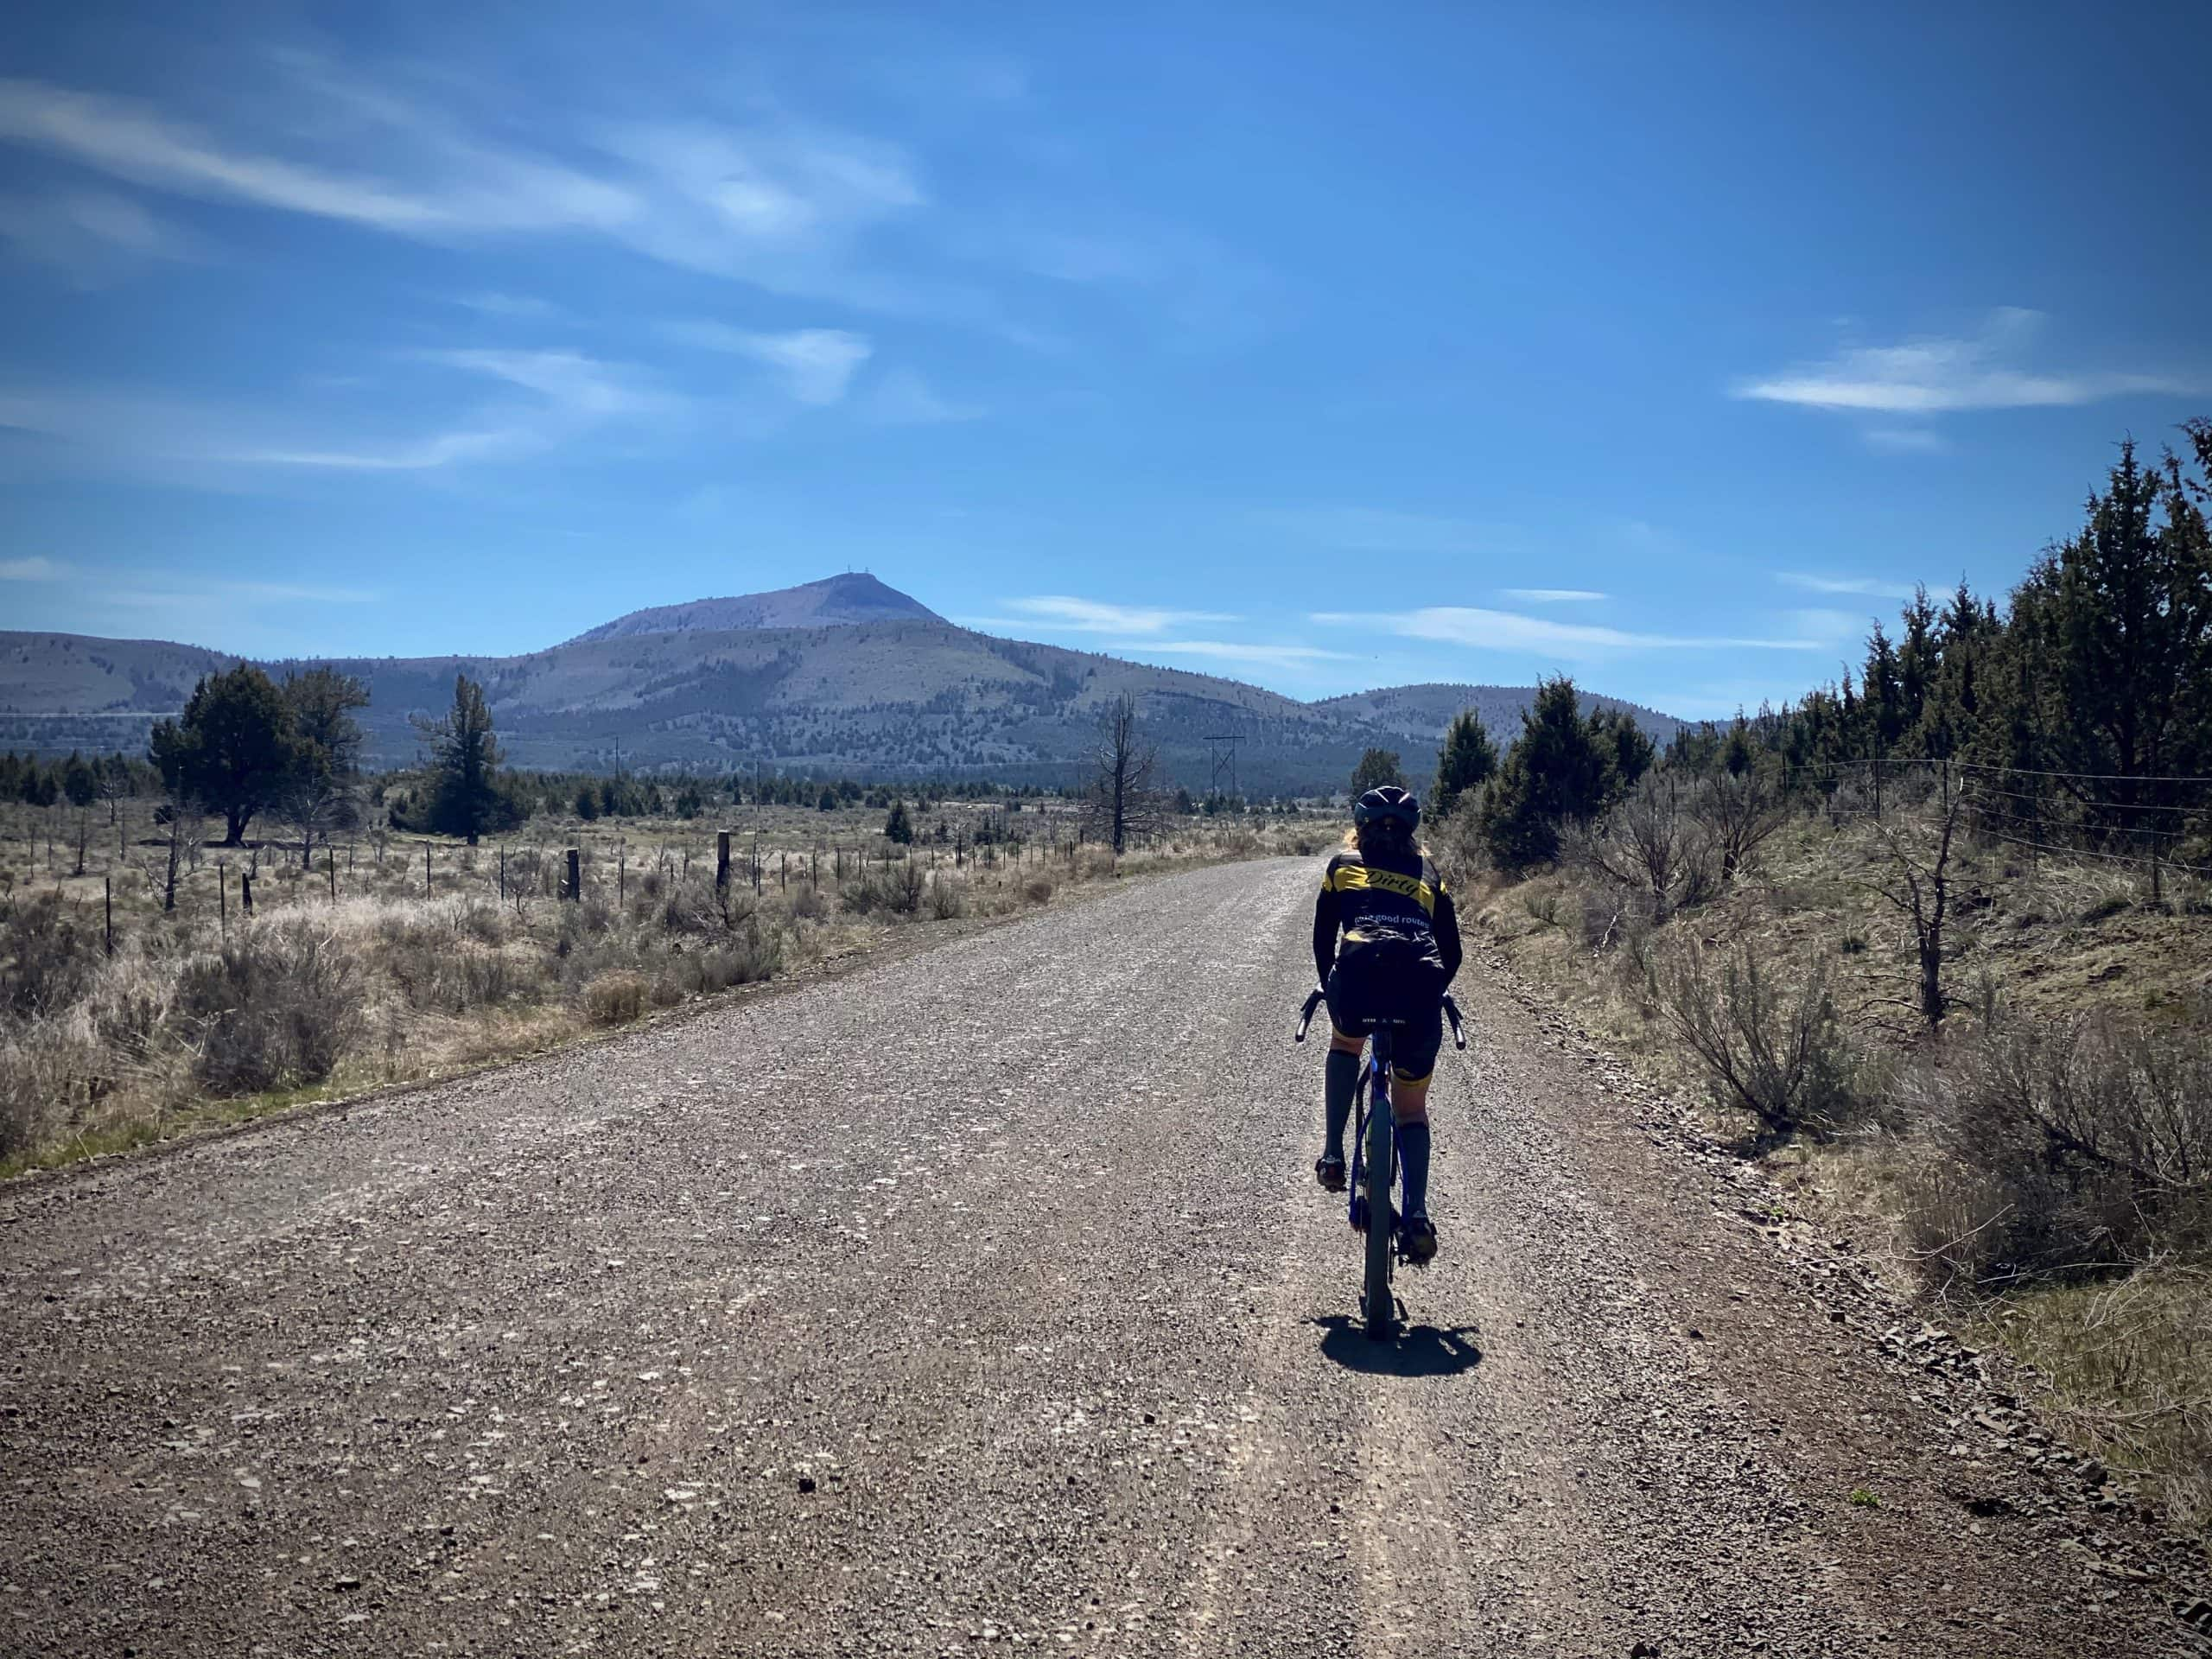 Cyclist on gravel road with Gray Butte in the distance. Near Smith Rock state park in Oregon.